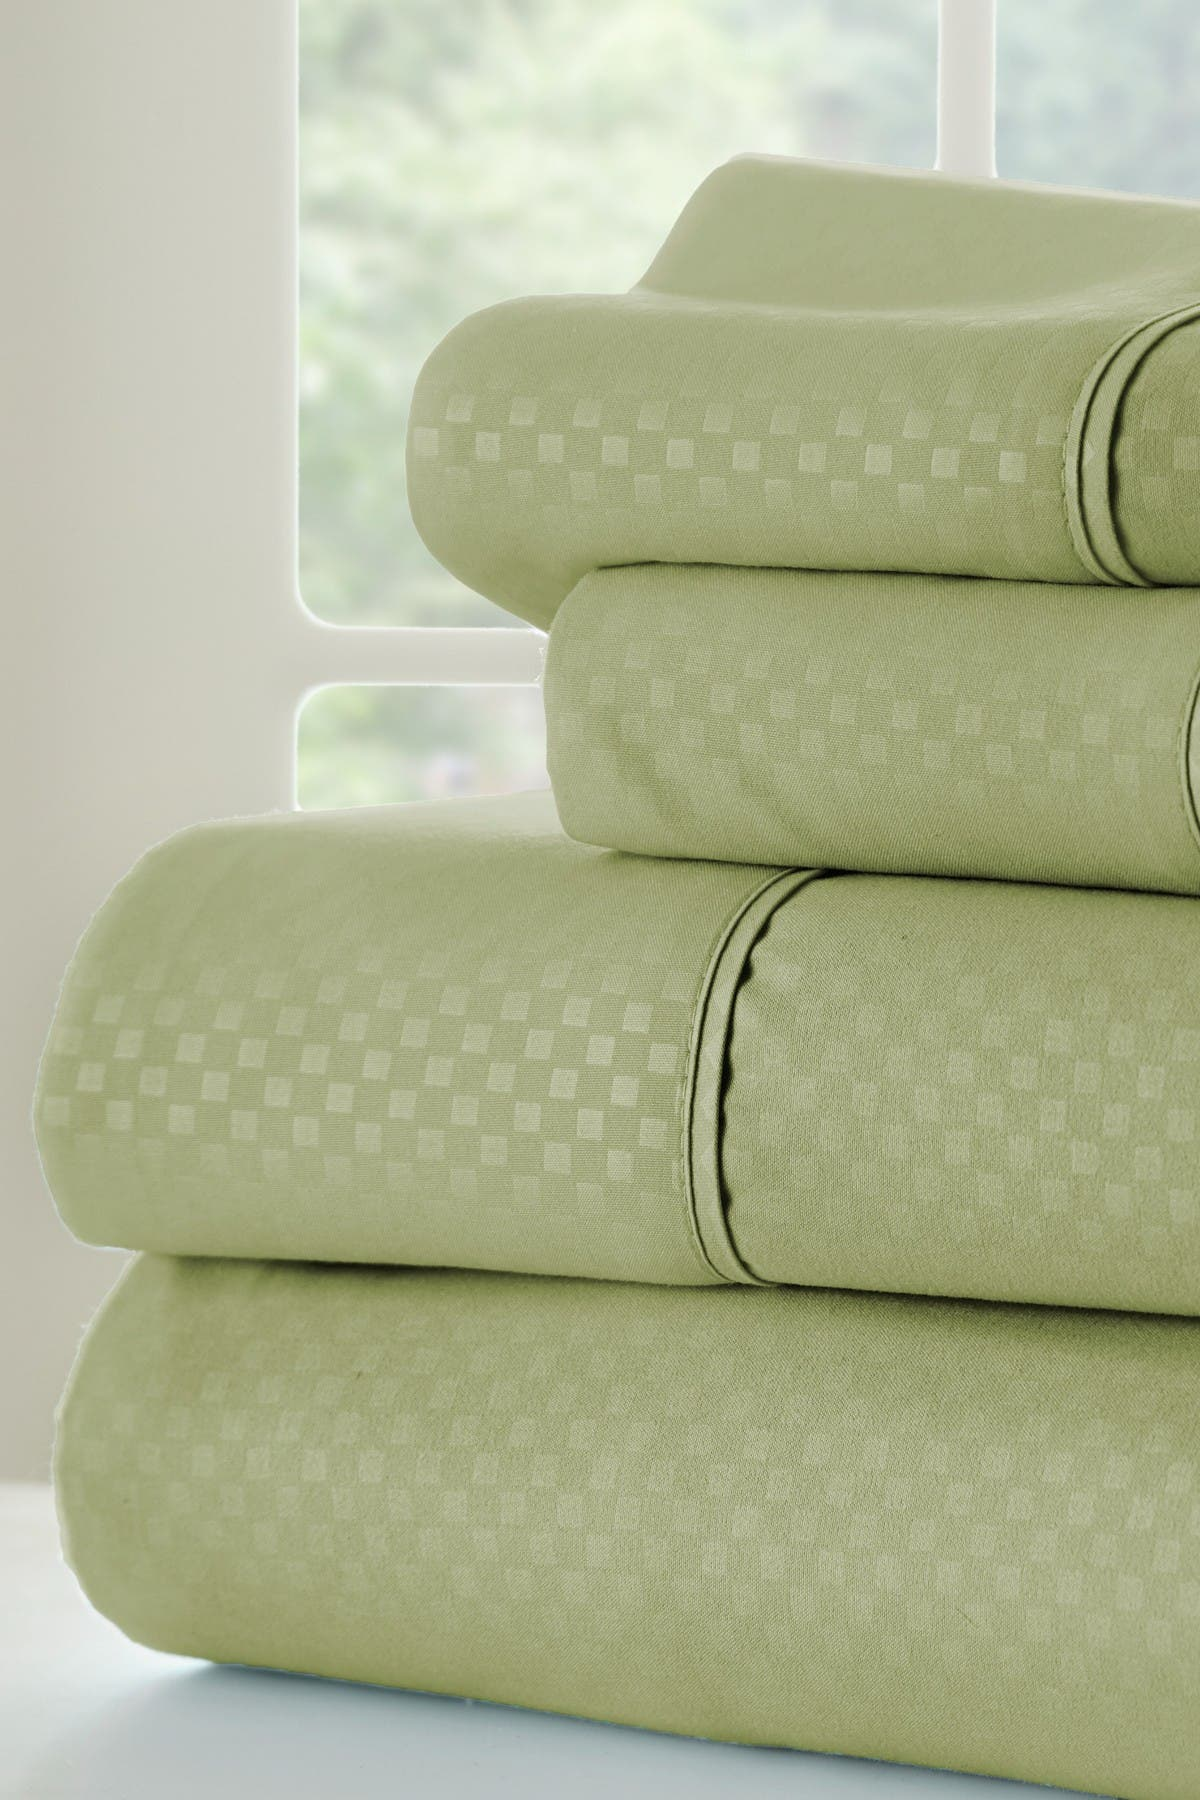 Image of IENJOY HOME King Hotel Collection Premium Ultra Soft 4-Piece Checkered Bed Sheet Set - Sage